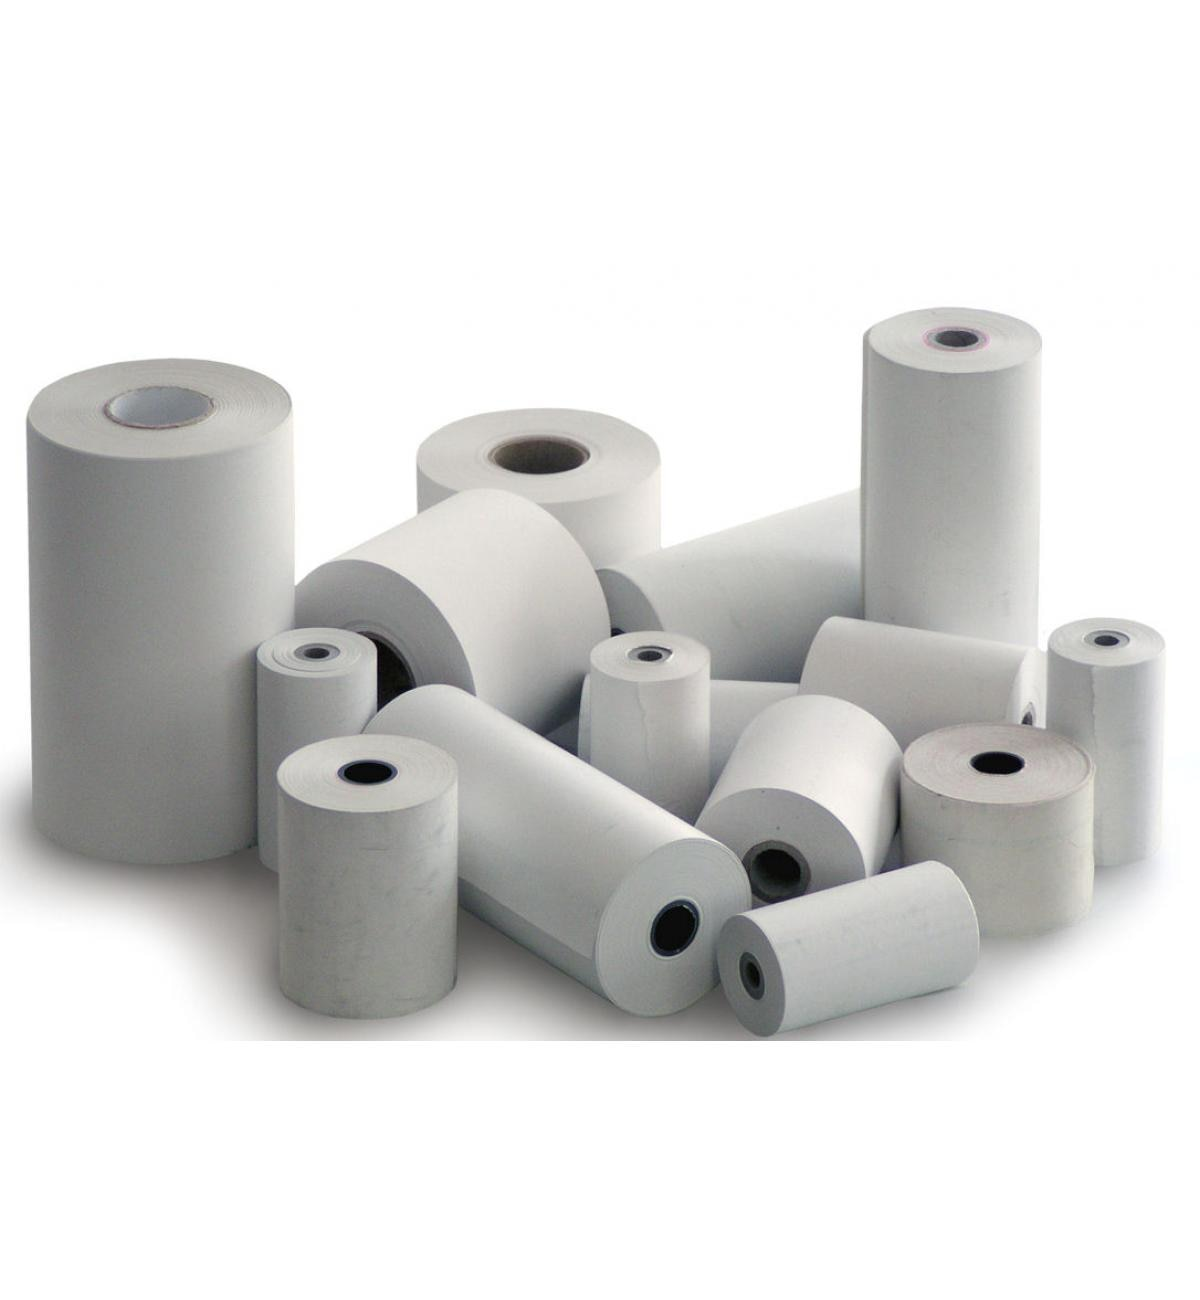 we are the leading Manufacturer of thermal Paper Roll in Indore.